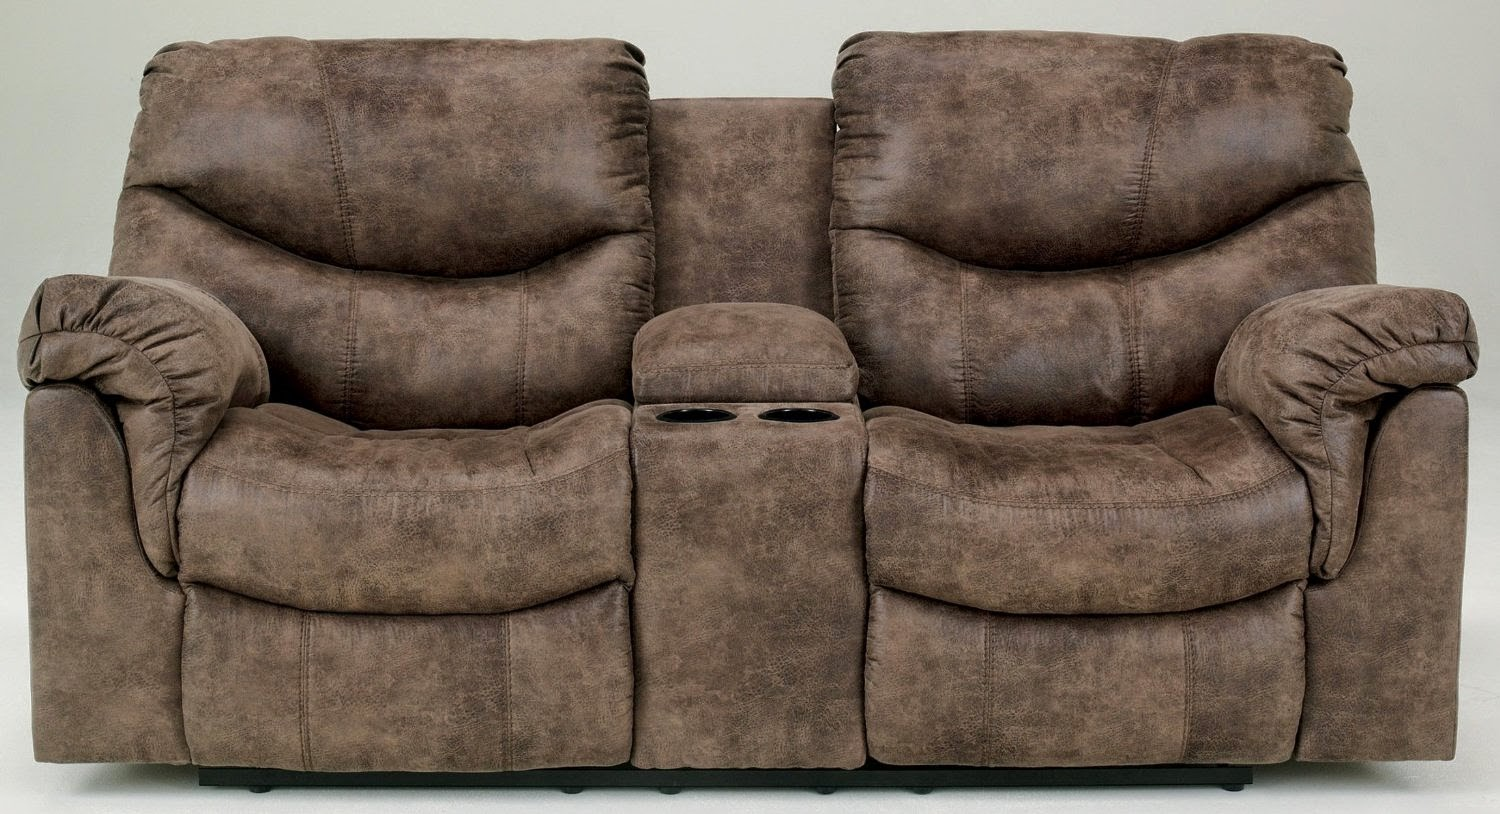 Reclining Sofa Reviews 2017 And Chair Cover Sets Power Urban Home Interior The Best Furnishings Rh Besthomefurnishingsrecliningsofa Blogspot Com